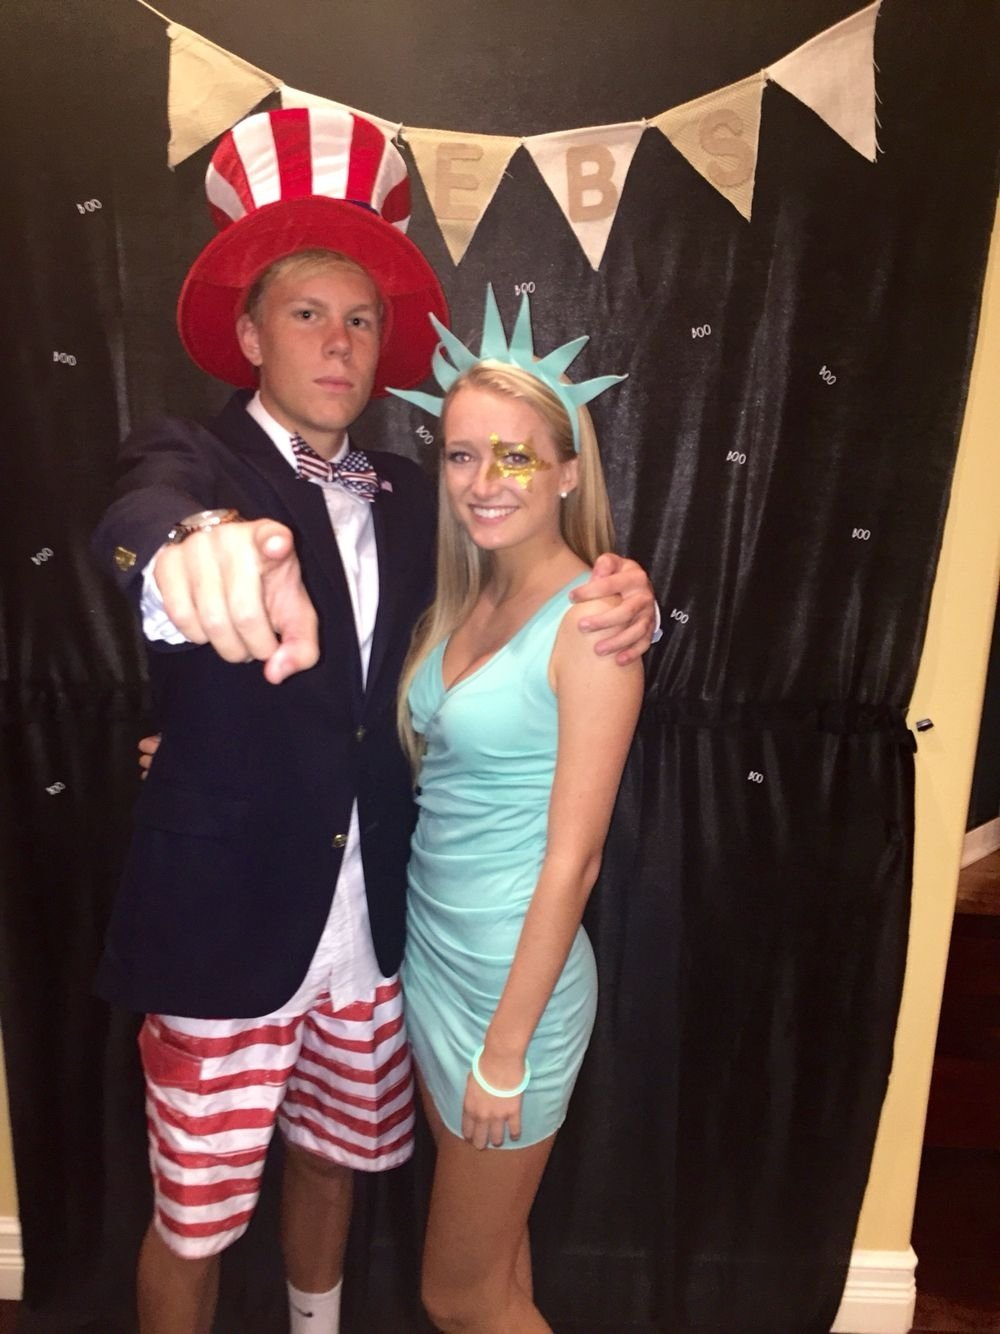 10 Trendy Boyfriend And Girlfriend Halloween Costume Ideas statue of liberty uncle sam costume cute pinterest costumes 2020